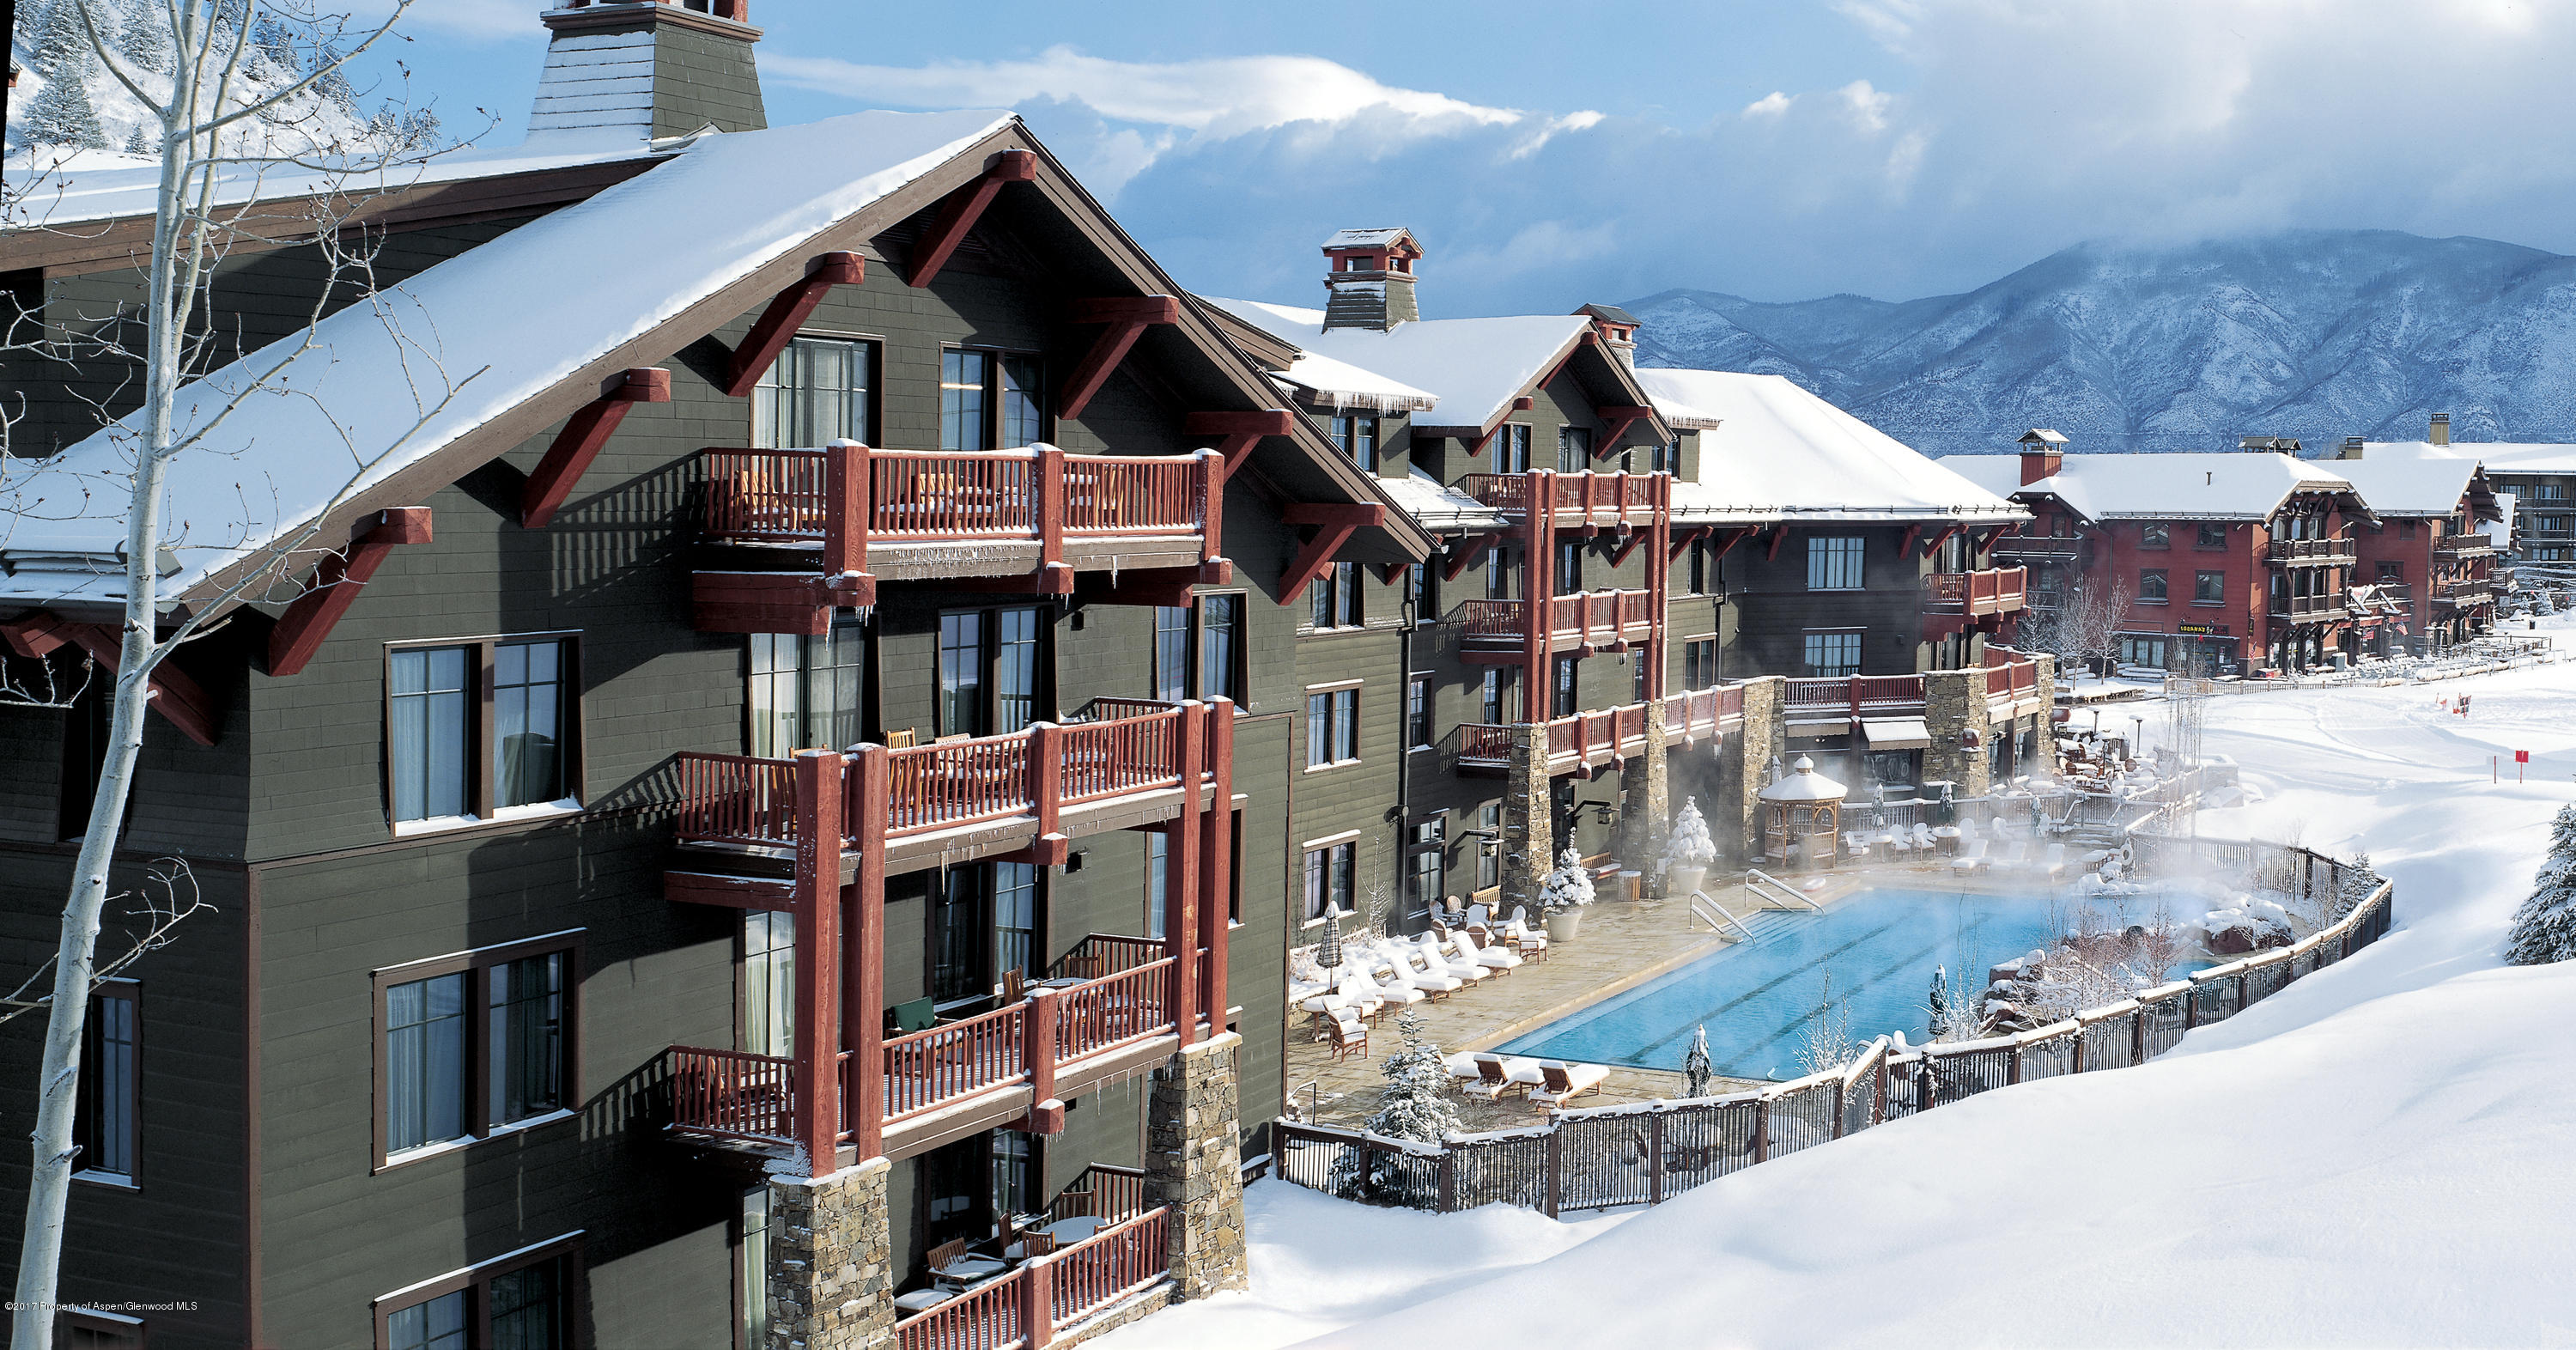 1/12 interest in a luxury condominium at the base of Aspen Highlands Ski Area. Residence 8105 is the sought after, slope side 3 bedroom 3.5 bath with a patio and ski-in access, in the Elk Horn Lodge. Summer Interest #10 gets you two consecutive ski weeks, one summer week and one float week on a rotating basis. Great spot in the rotation! You get January 29 - February 5 and June 25- July 9, 2022. February 11-18 and July 8-22, 2023. All the fabulous Ritz services and amenities. Exchange privileges with Ritz Residence Clubs in St. Thomas, Vail, Lake Tahoe and San Francisco. 3rd Home and Marriott give you a myriad of trading opportunities.*Photos are stock photos, not actual unit.